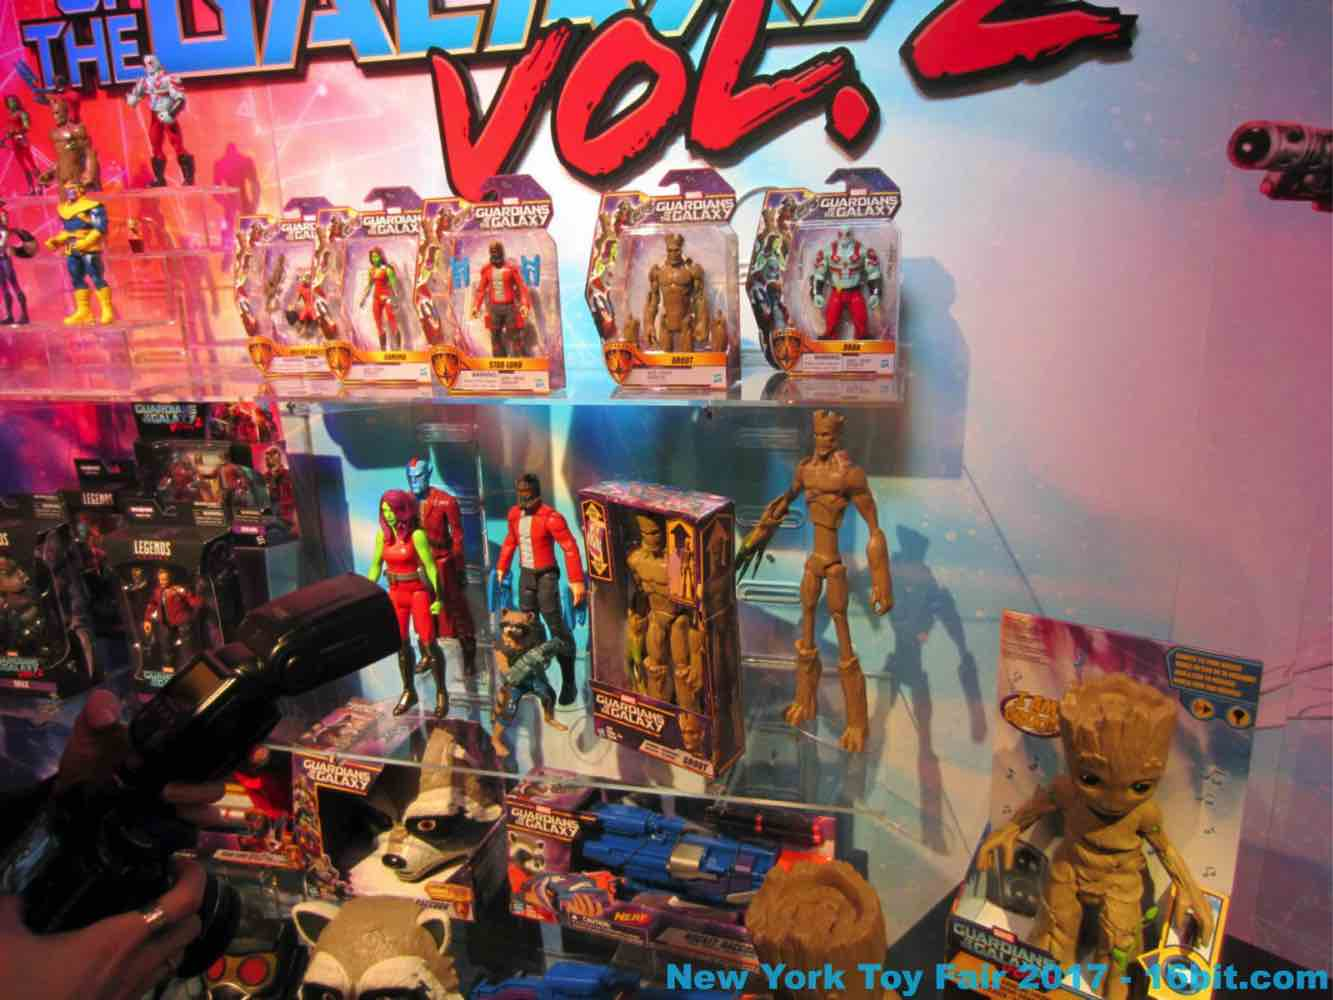 16bit Com Toy Fair Coverage Of Hasbro Marvel Toys From Adam Pawlus